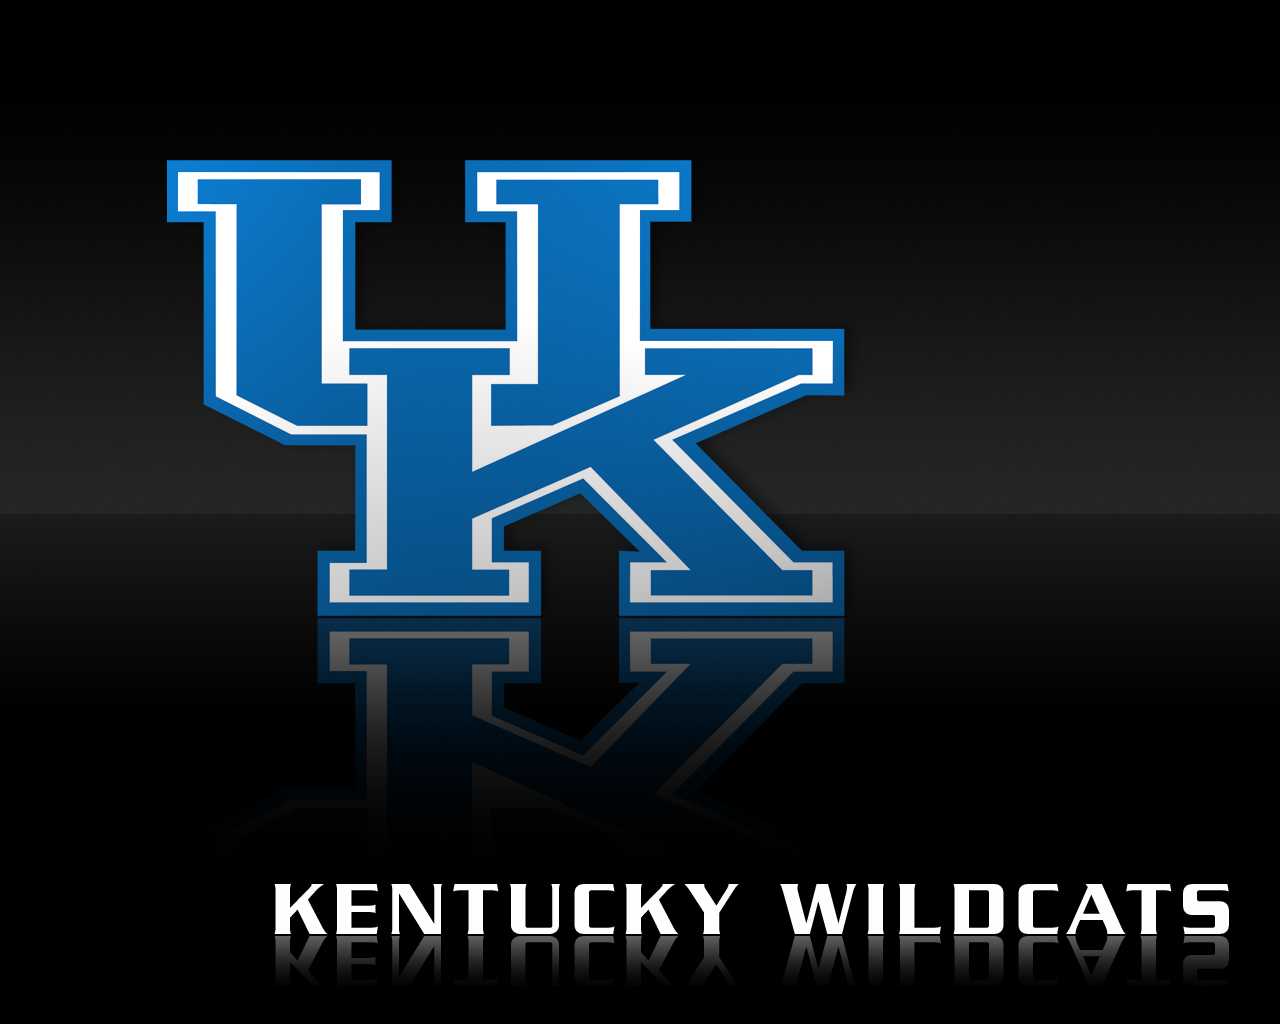 FunMozar Kentucky Wildcats Basketball Wallpapers 1280x1024